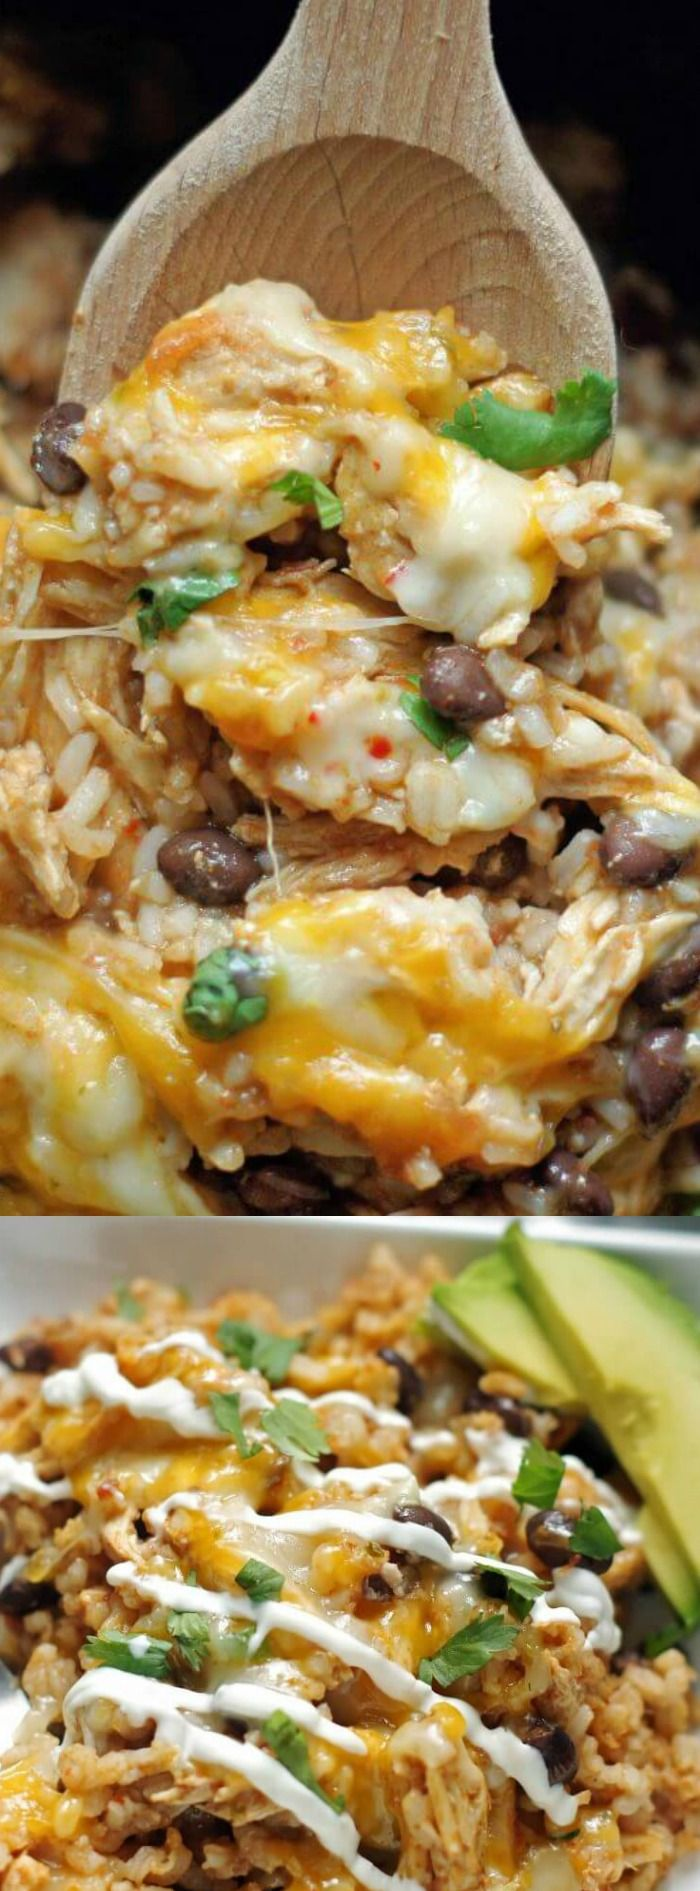 This Slow Cooker Spicy Chicken and Rice dinner recipe from 5 Boys Baker tops our list of favorite slow cooker meals to make on a cold chilly night. It has just the right amount of kick that your family will love because it will warm them right up!